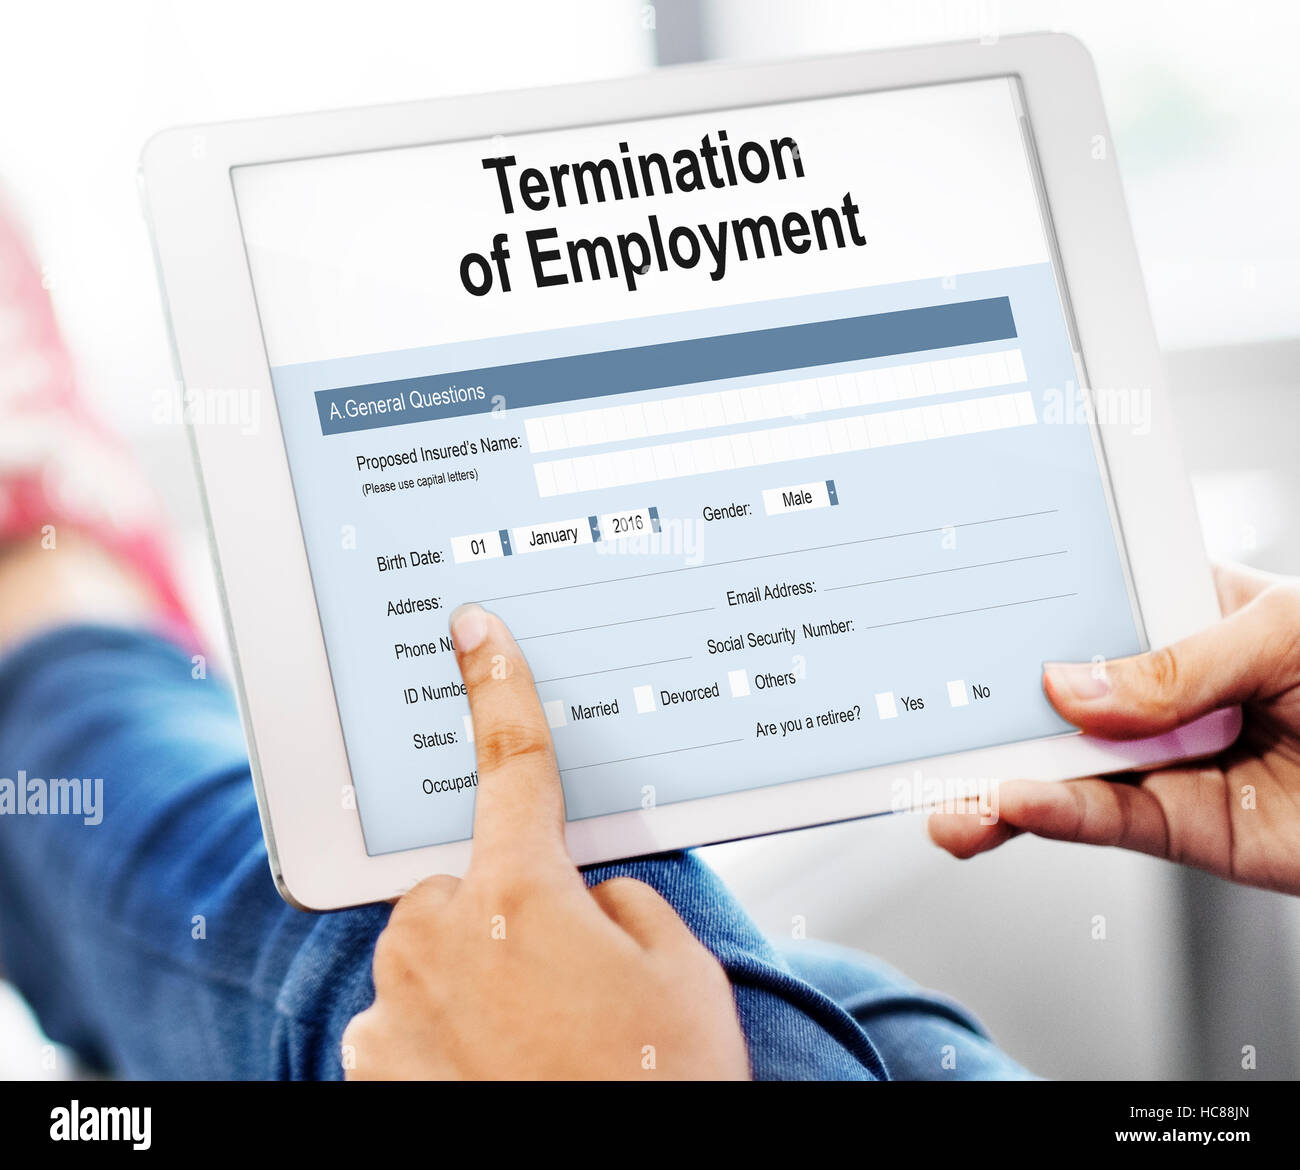 Termination Employment Job Form Concept - Stock Image